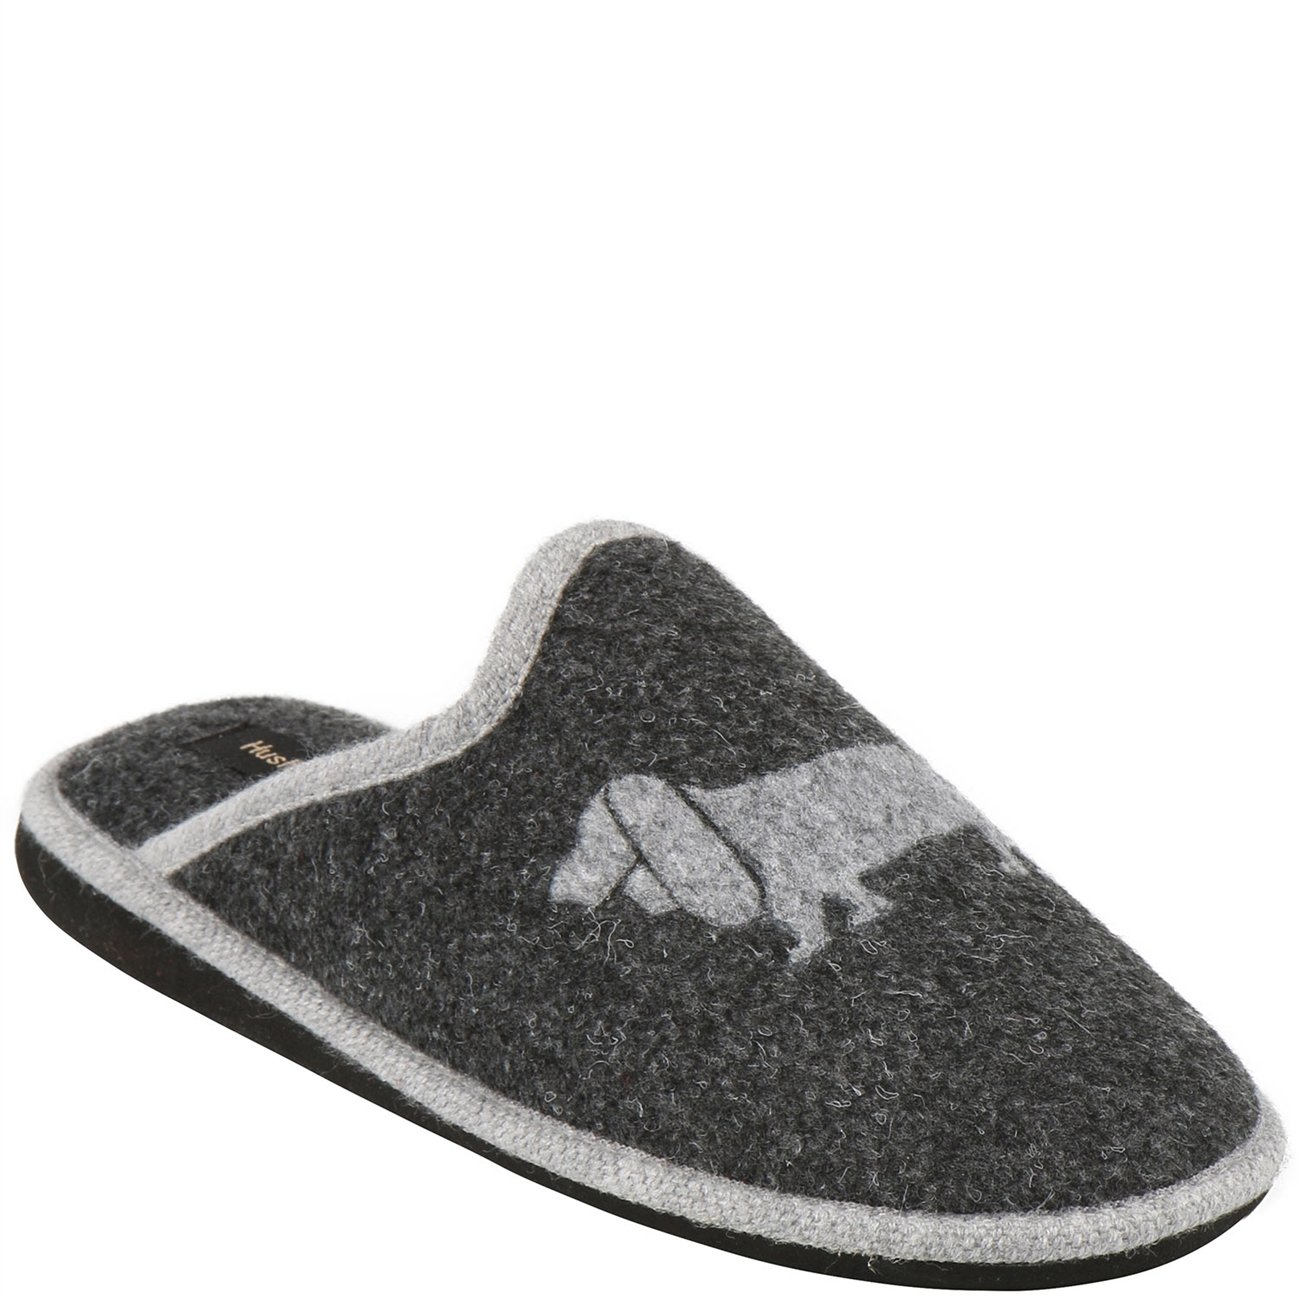 Hush Puppies Damens Homeslippers Felt Grau Antrasit and Grau Grau Felt 3cf318